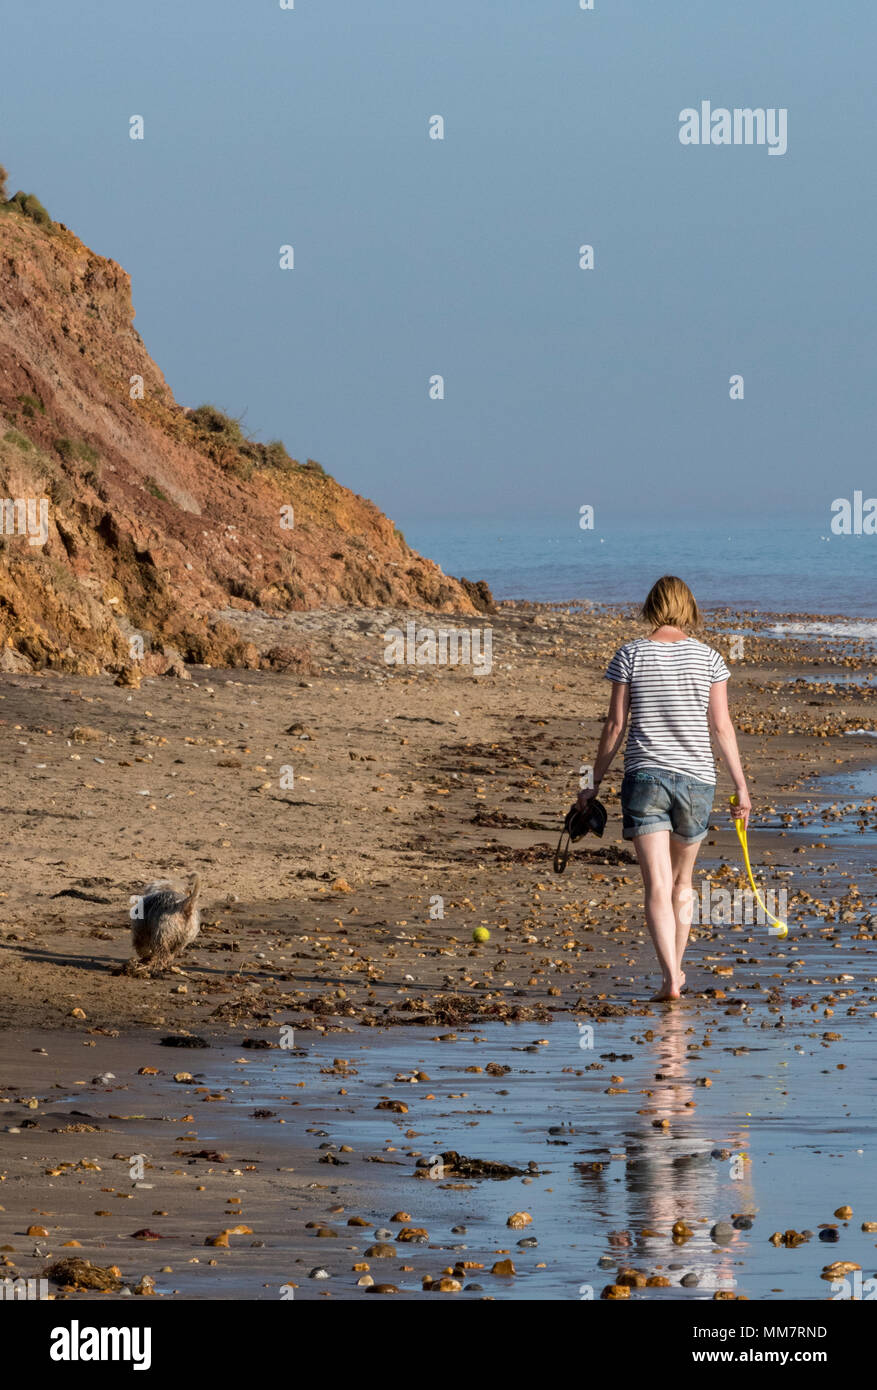 a woman wearing shorts walking along a beach with a dog in the summer on s bright and sunny day at the seaside. walking the dog and mans best friend. - Stock Image